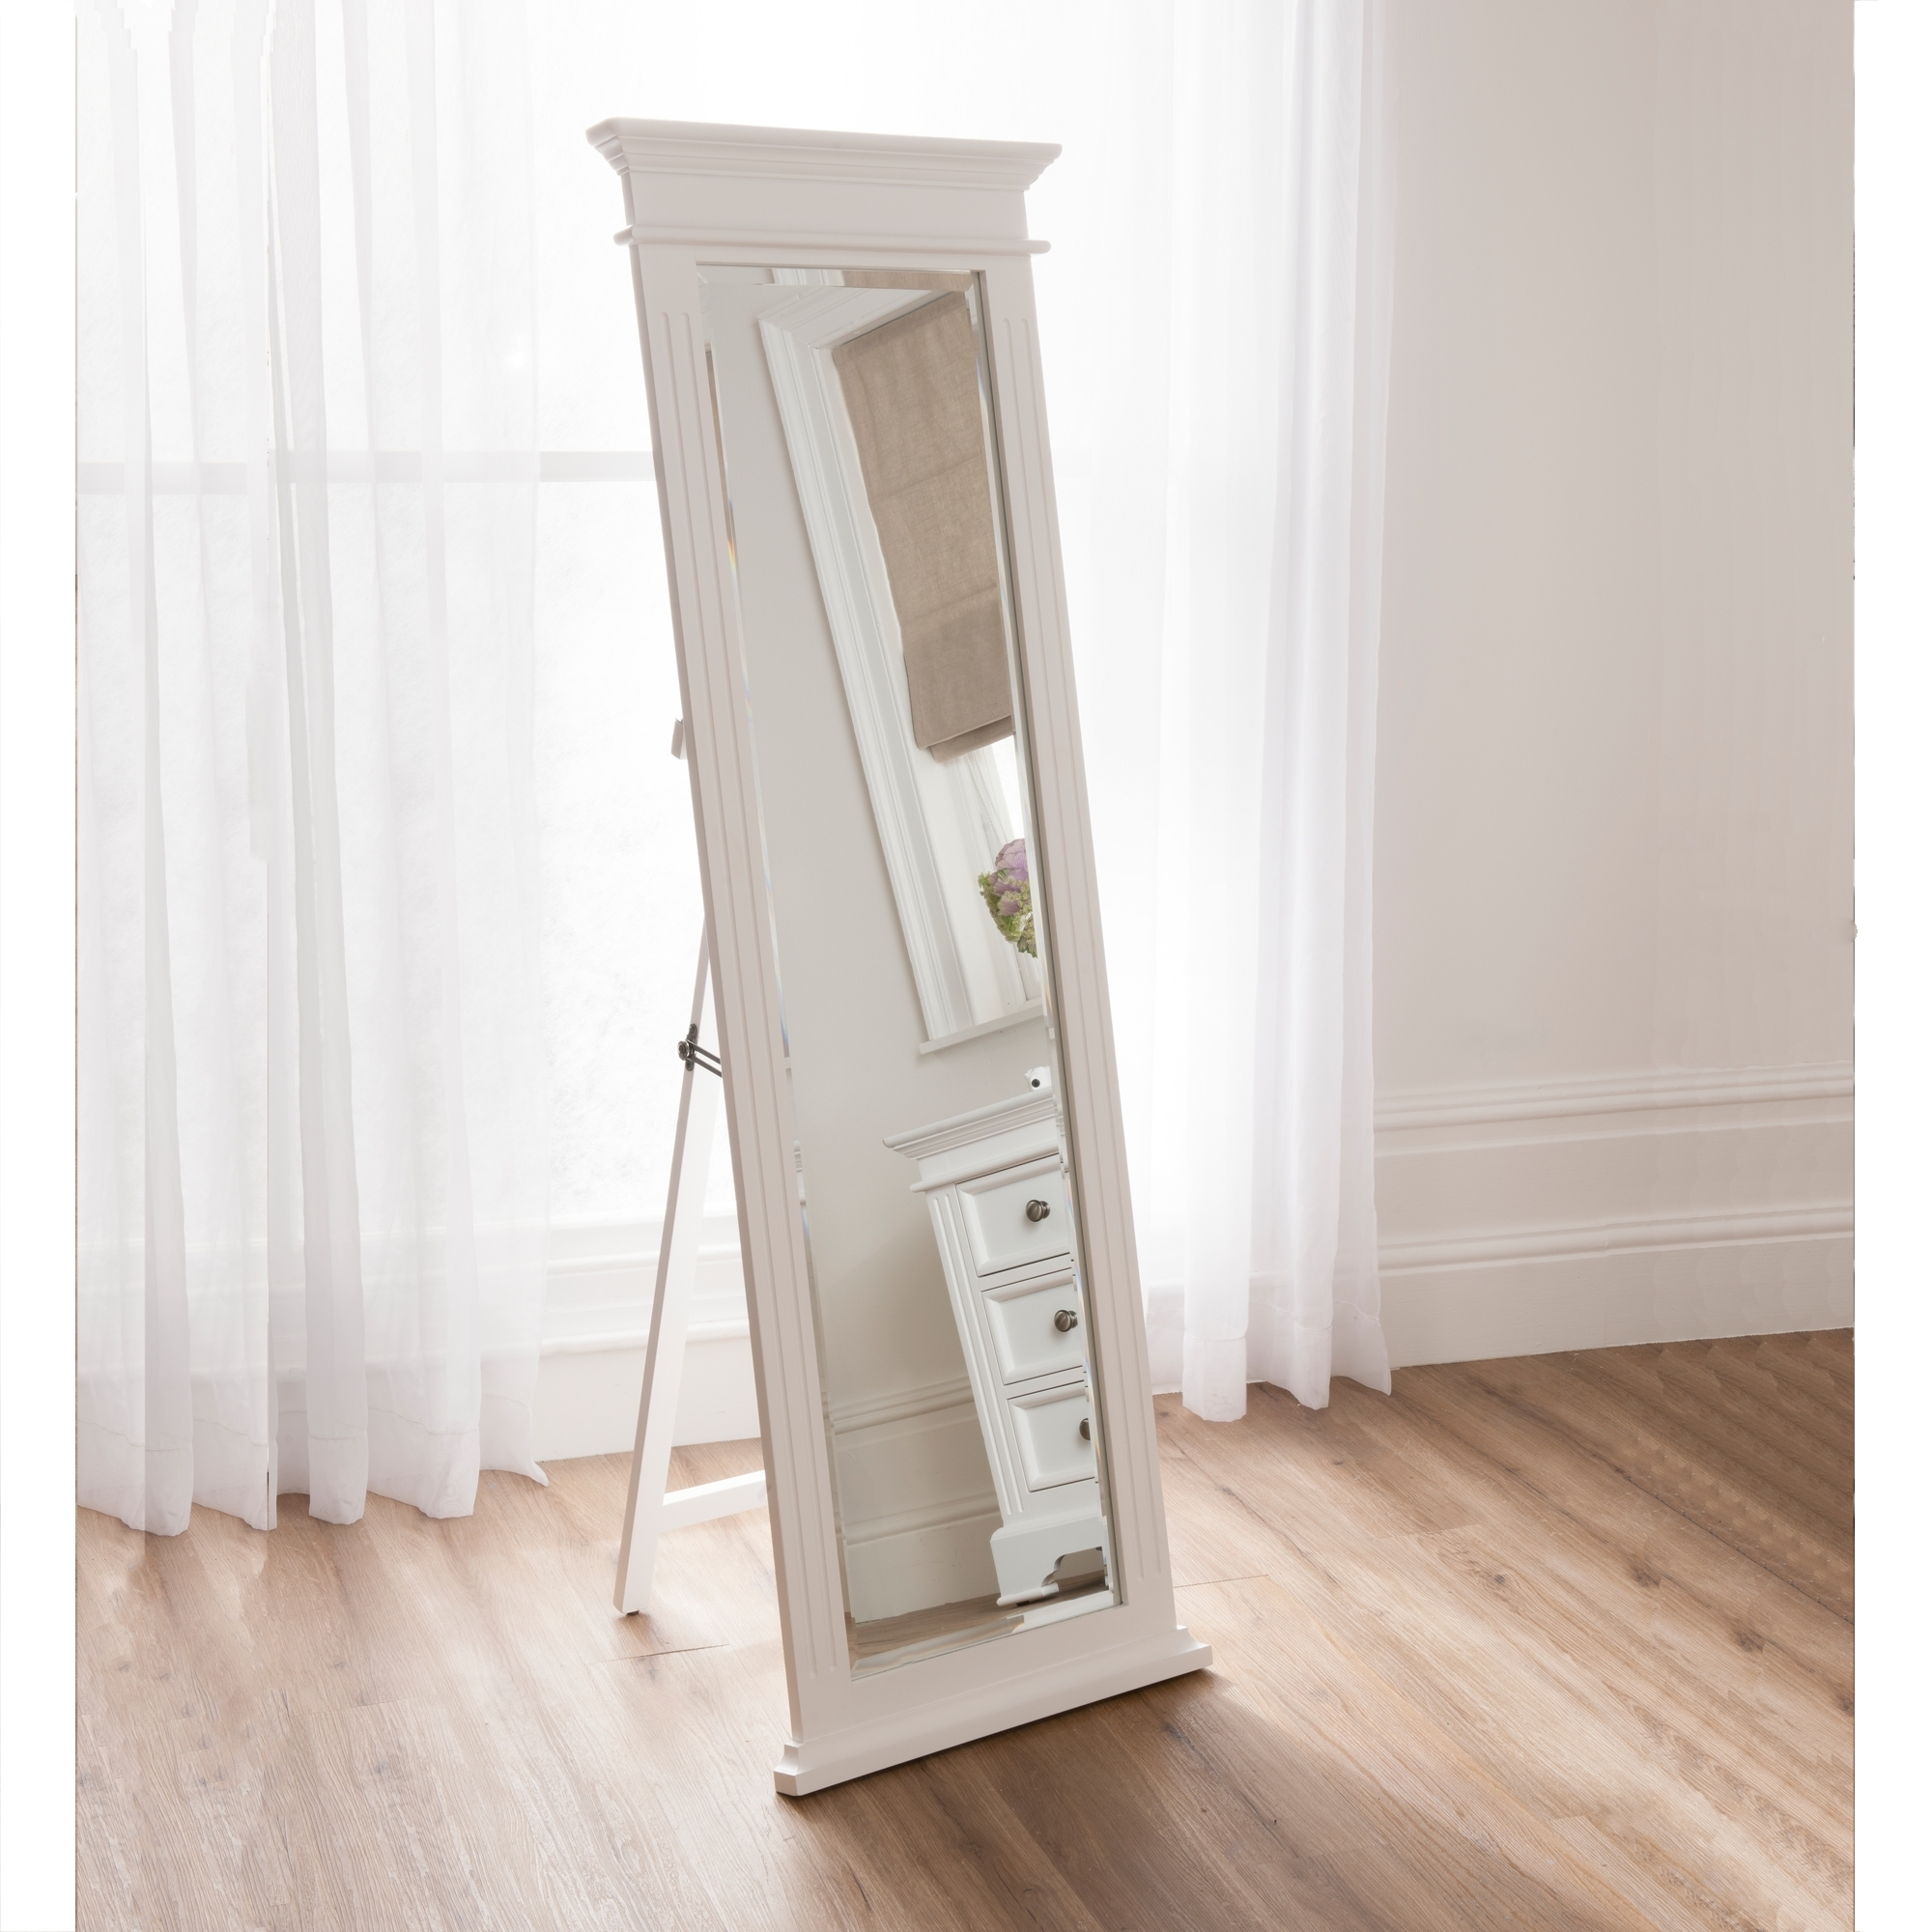 Cheval Mirrors French Style Mirrors Shab Chic Inside Shabby Chic Floor Standing Mirror (Image 6 of 15)